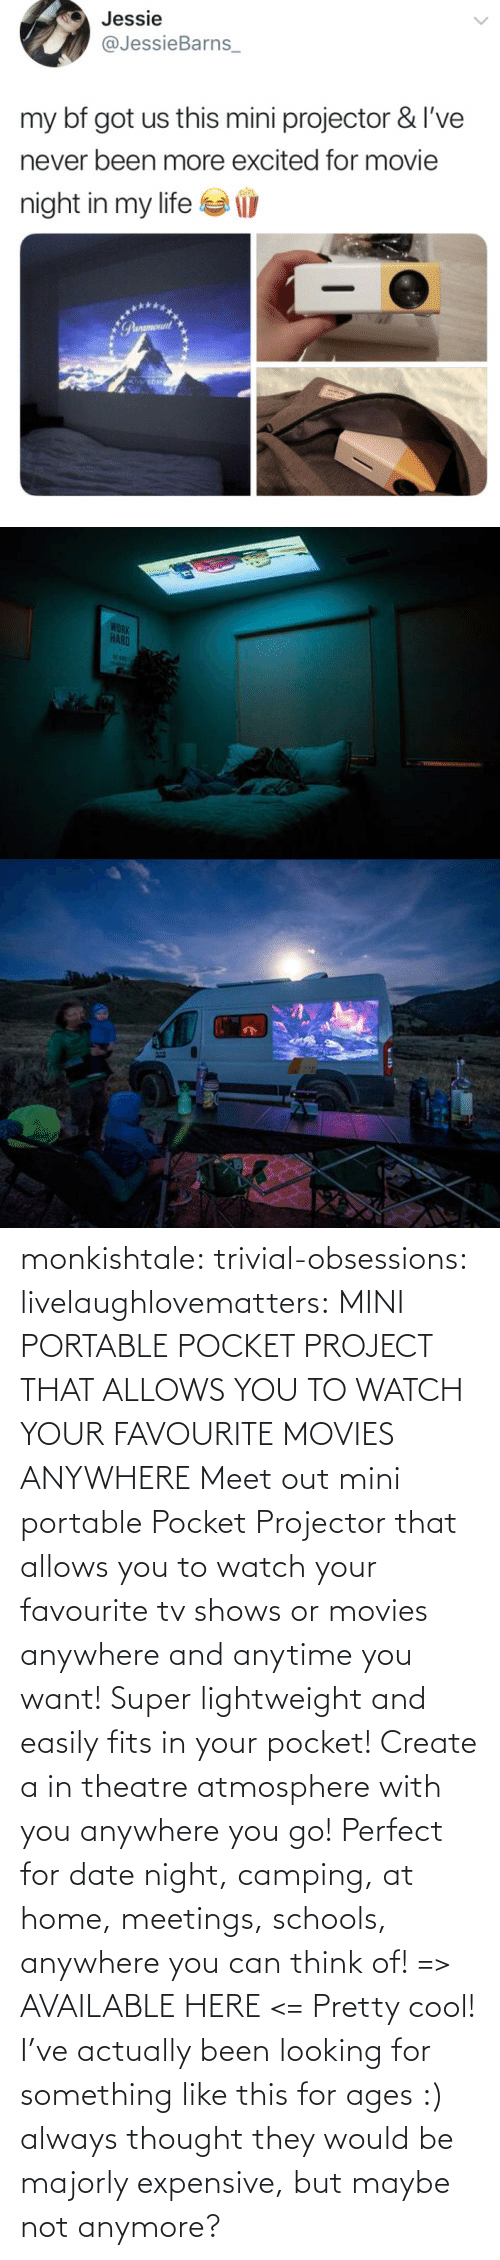 project: monkishtale: trivial-obsessions:   livelaughlovematters:   MINI PORTABLE POCKET PROJECT THAT ALLOWS YOU TO WATCH YOUR FAVOURITE MOVIES ANYWHERE Meet out mini portable Pocket Projector that allows you to watch your favourite tv shows or movies anywhere and anytime you want! Super lightweight and easily fits in your pocket! Create a in theatre atmosphere with you anywhere you go! Perfect for date night, camping, at home, meetings, schools, anywhere you can think of! => AVAILABLE HERE <=    Pretty cool!    I've actually been looking for something like this for ages :) always thought they would be majorly expensive, but maybe not anymore?